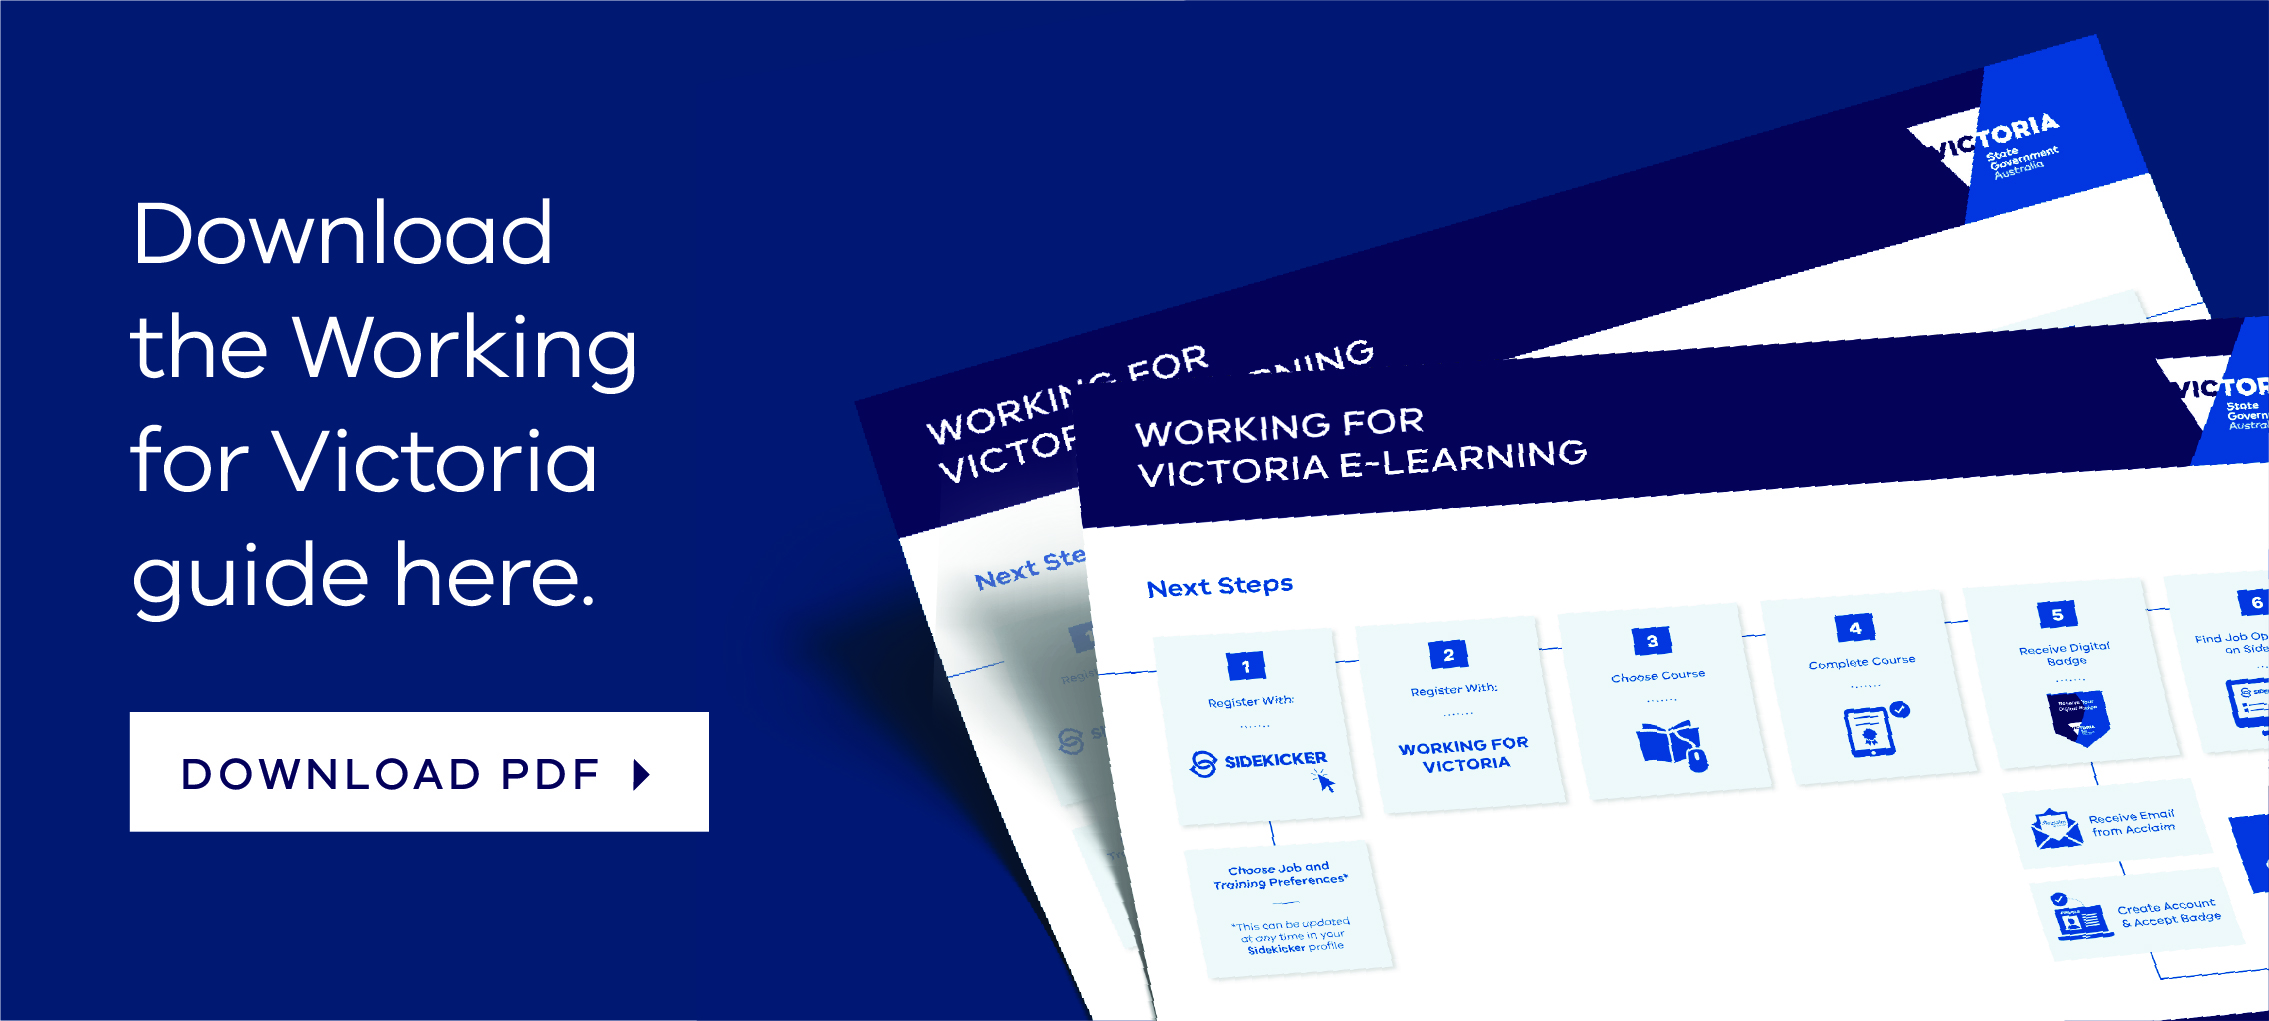 Download the Working for Victoria guide here